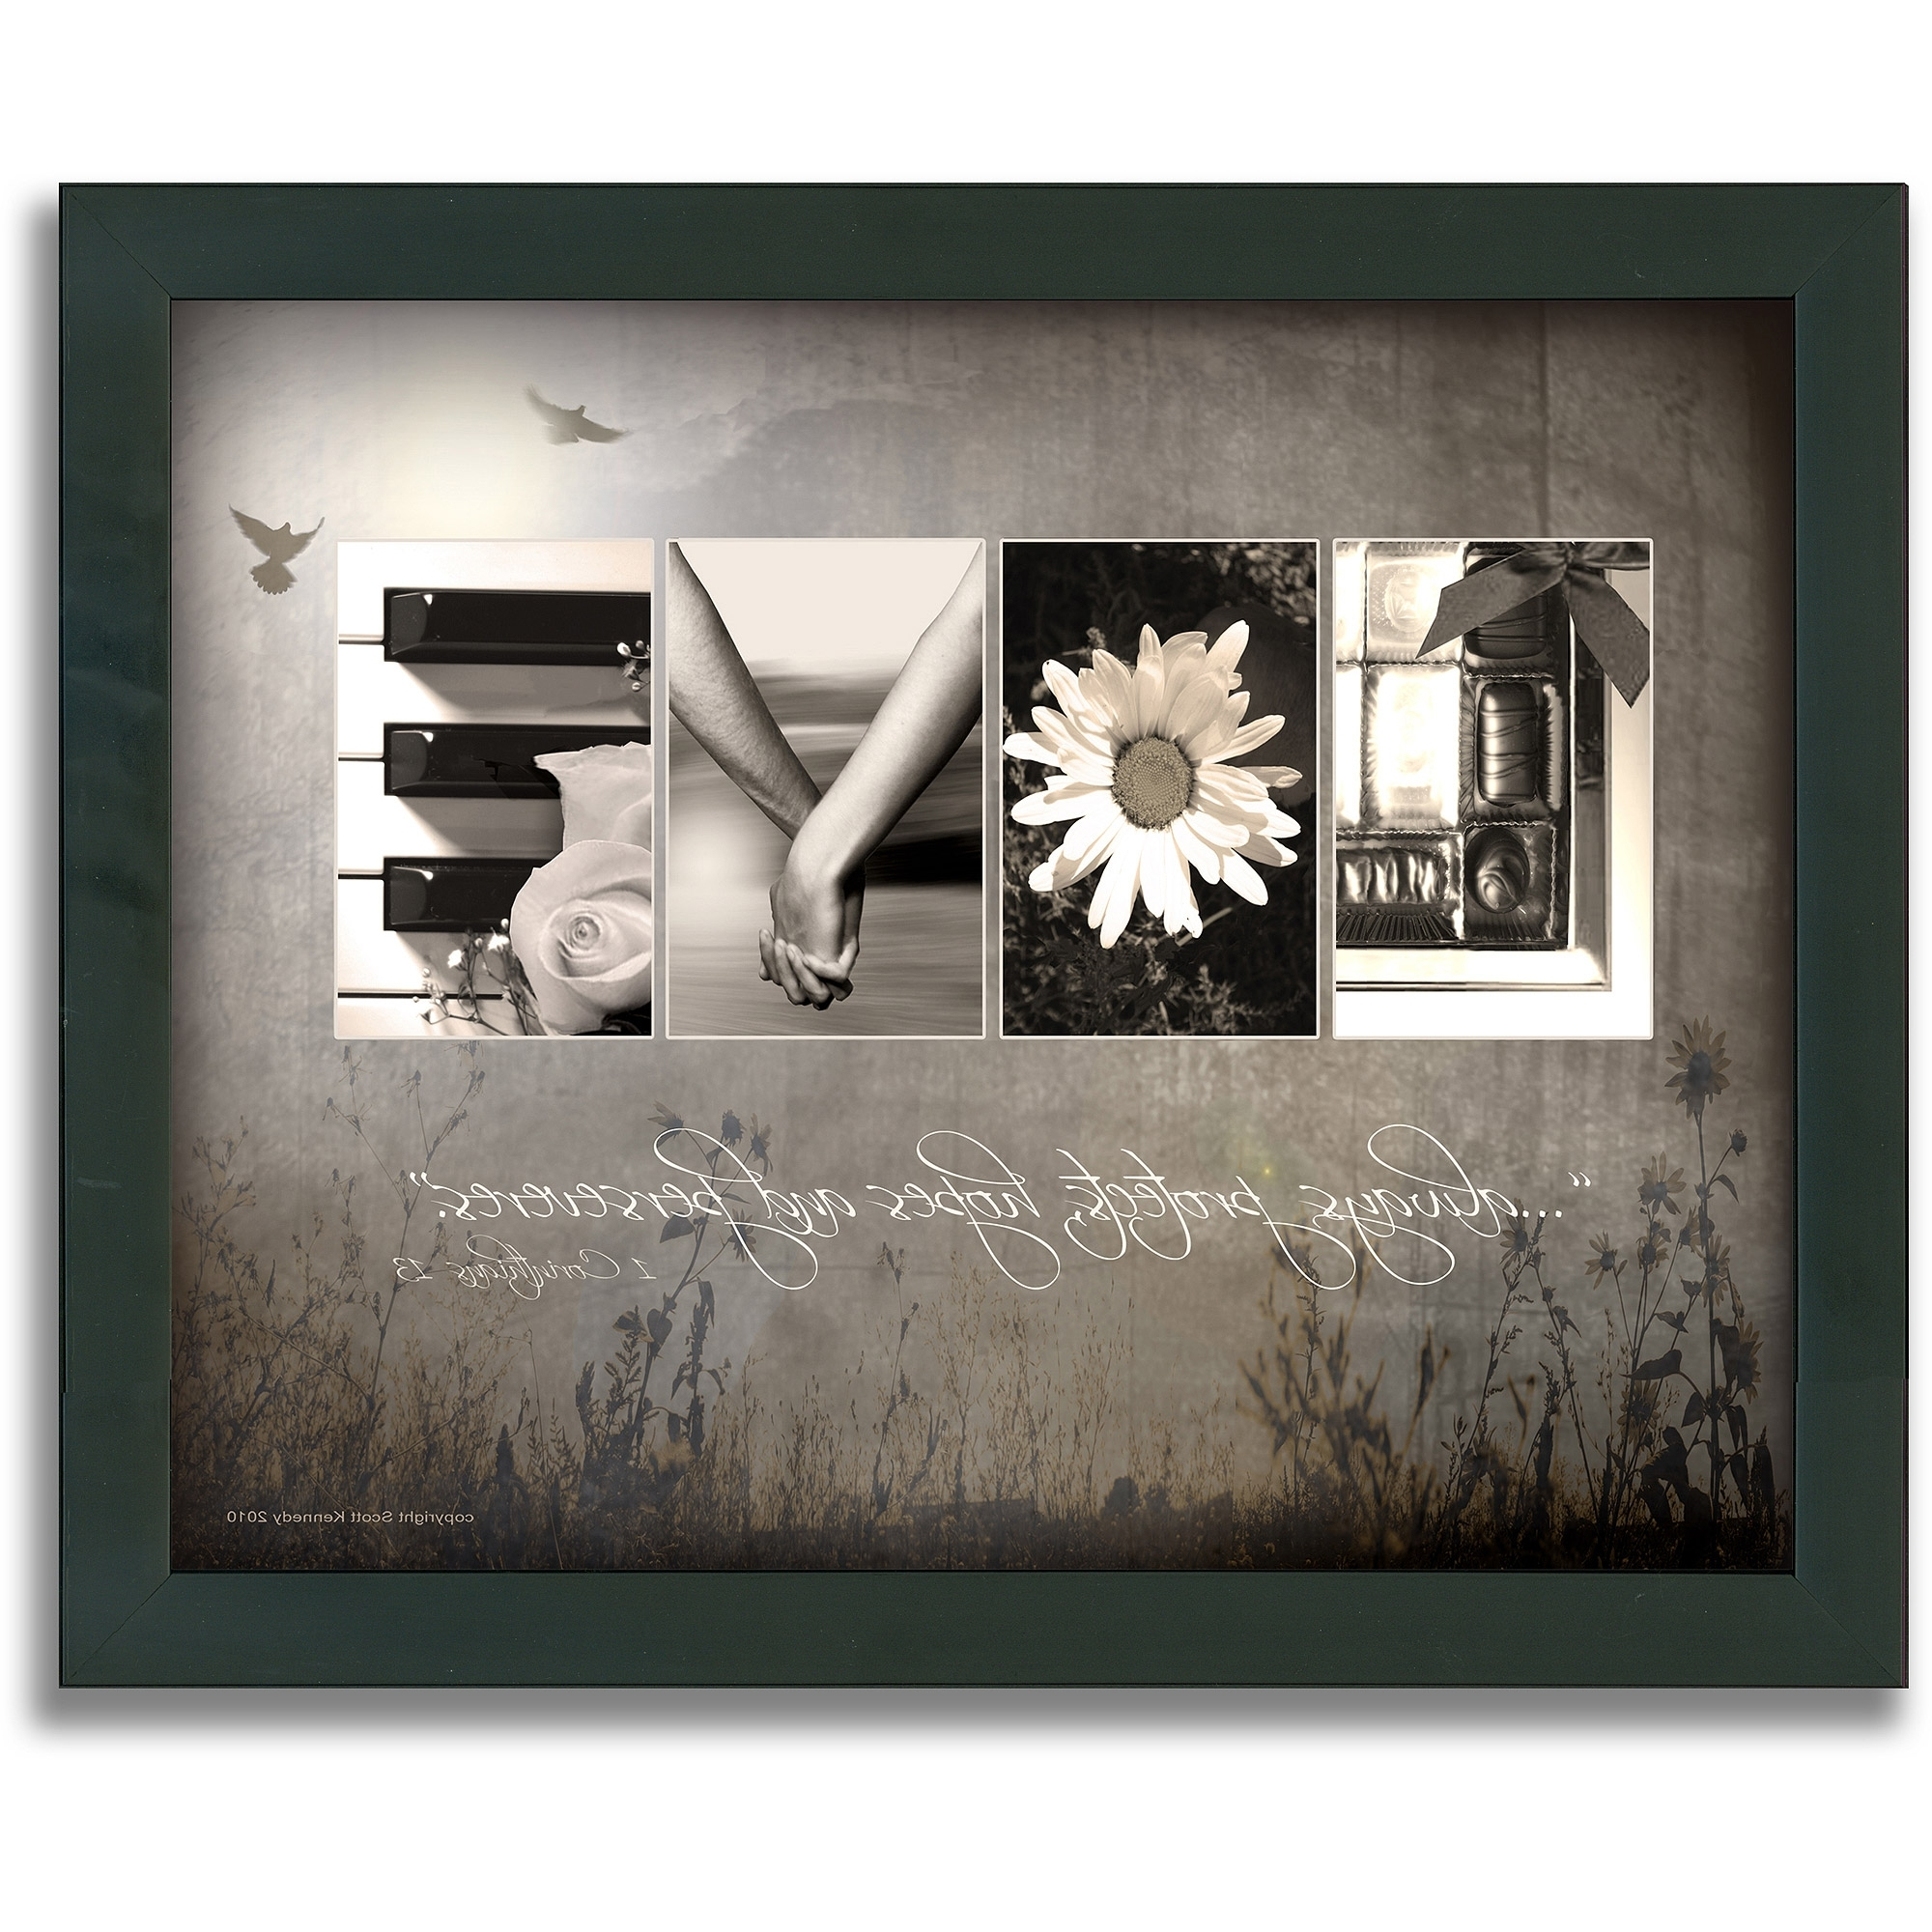 Personal Prints Love Letters Framed Canvas Wall Art – Walmart For Famous Letters Canvas Wall Art (View 13 of 15)